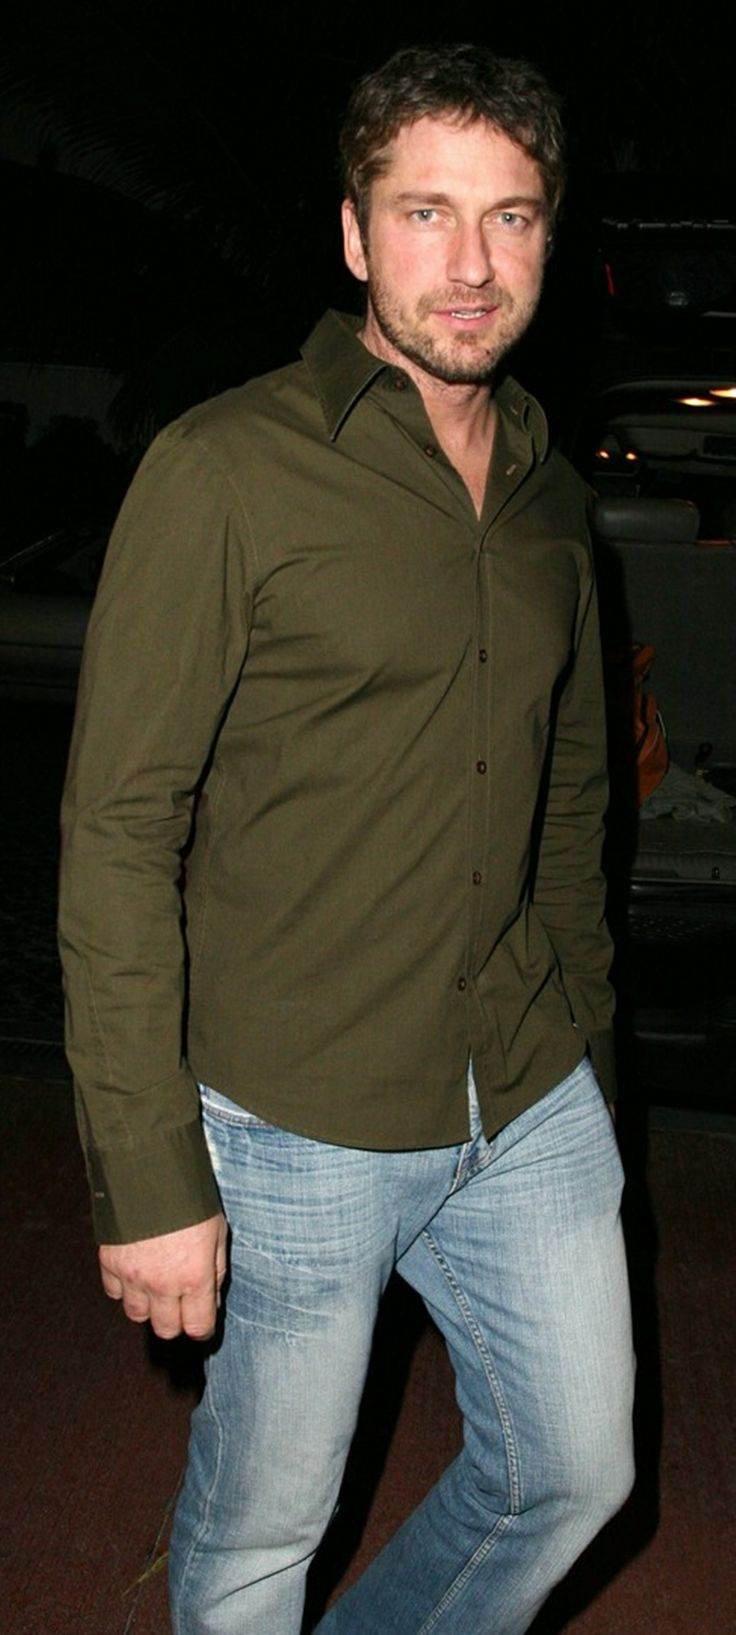 Image result for KHAKI SHIRT ACTOR